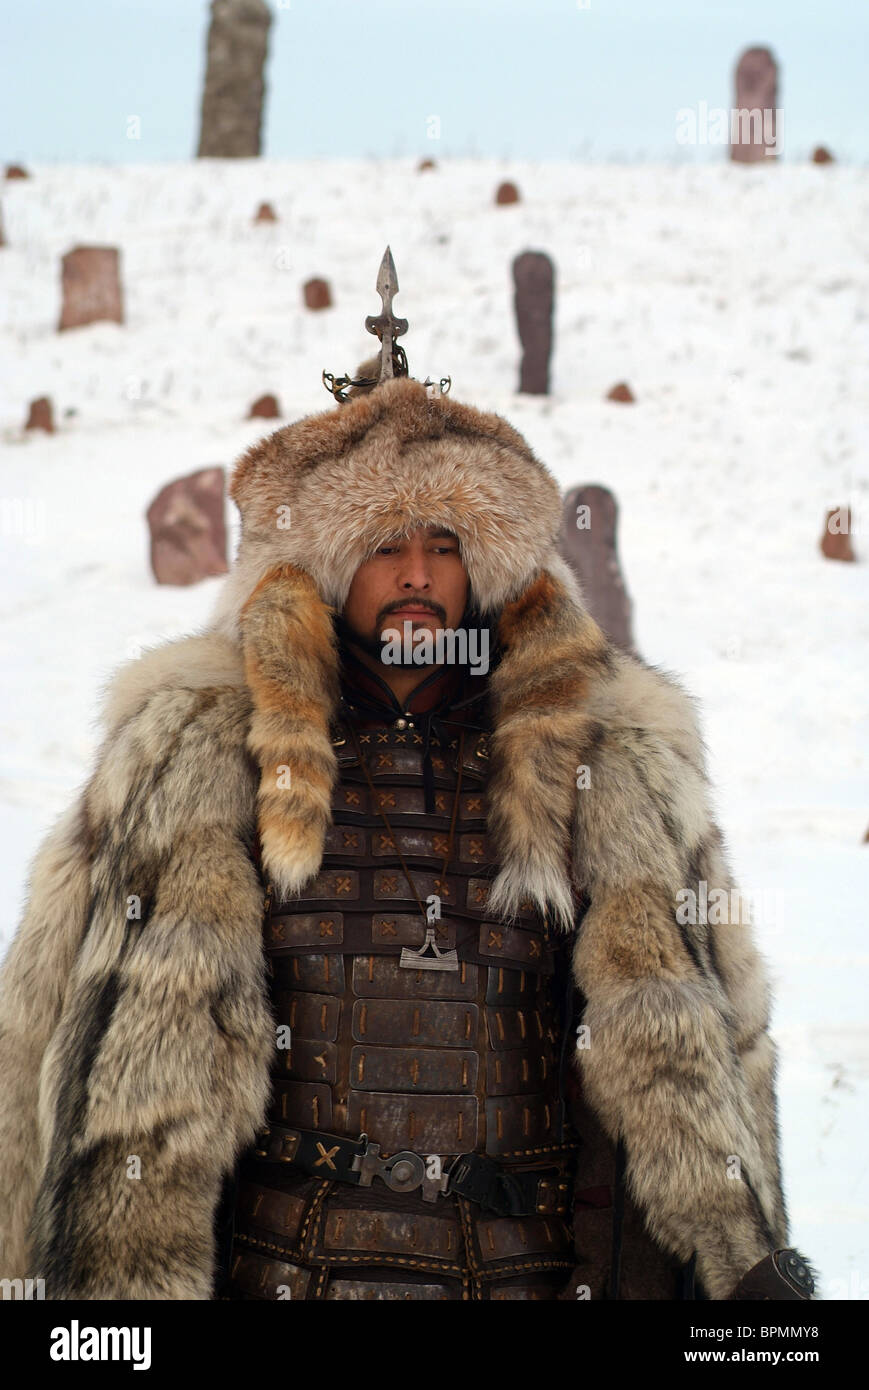 Shots form Andrei Borisov's historical epic drama The Mystery of Genghis Khan - Stock Image